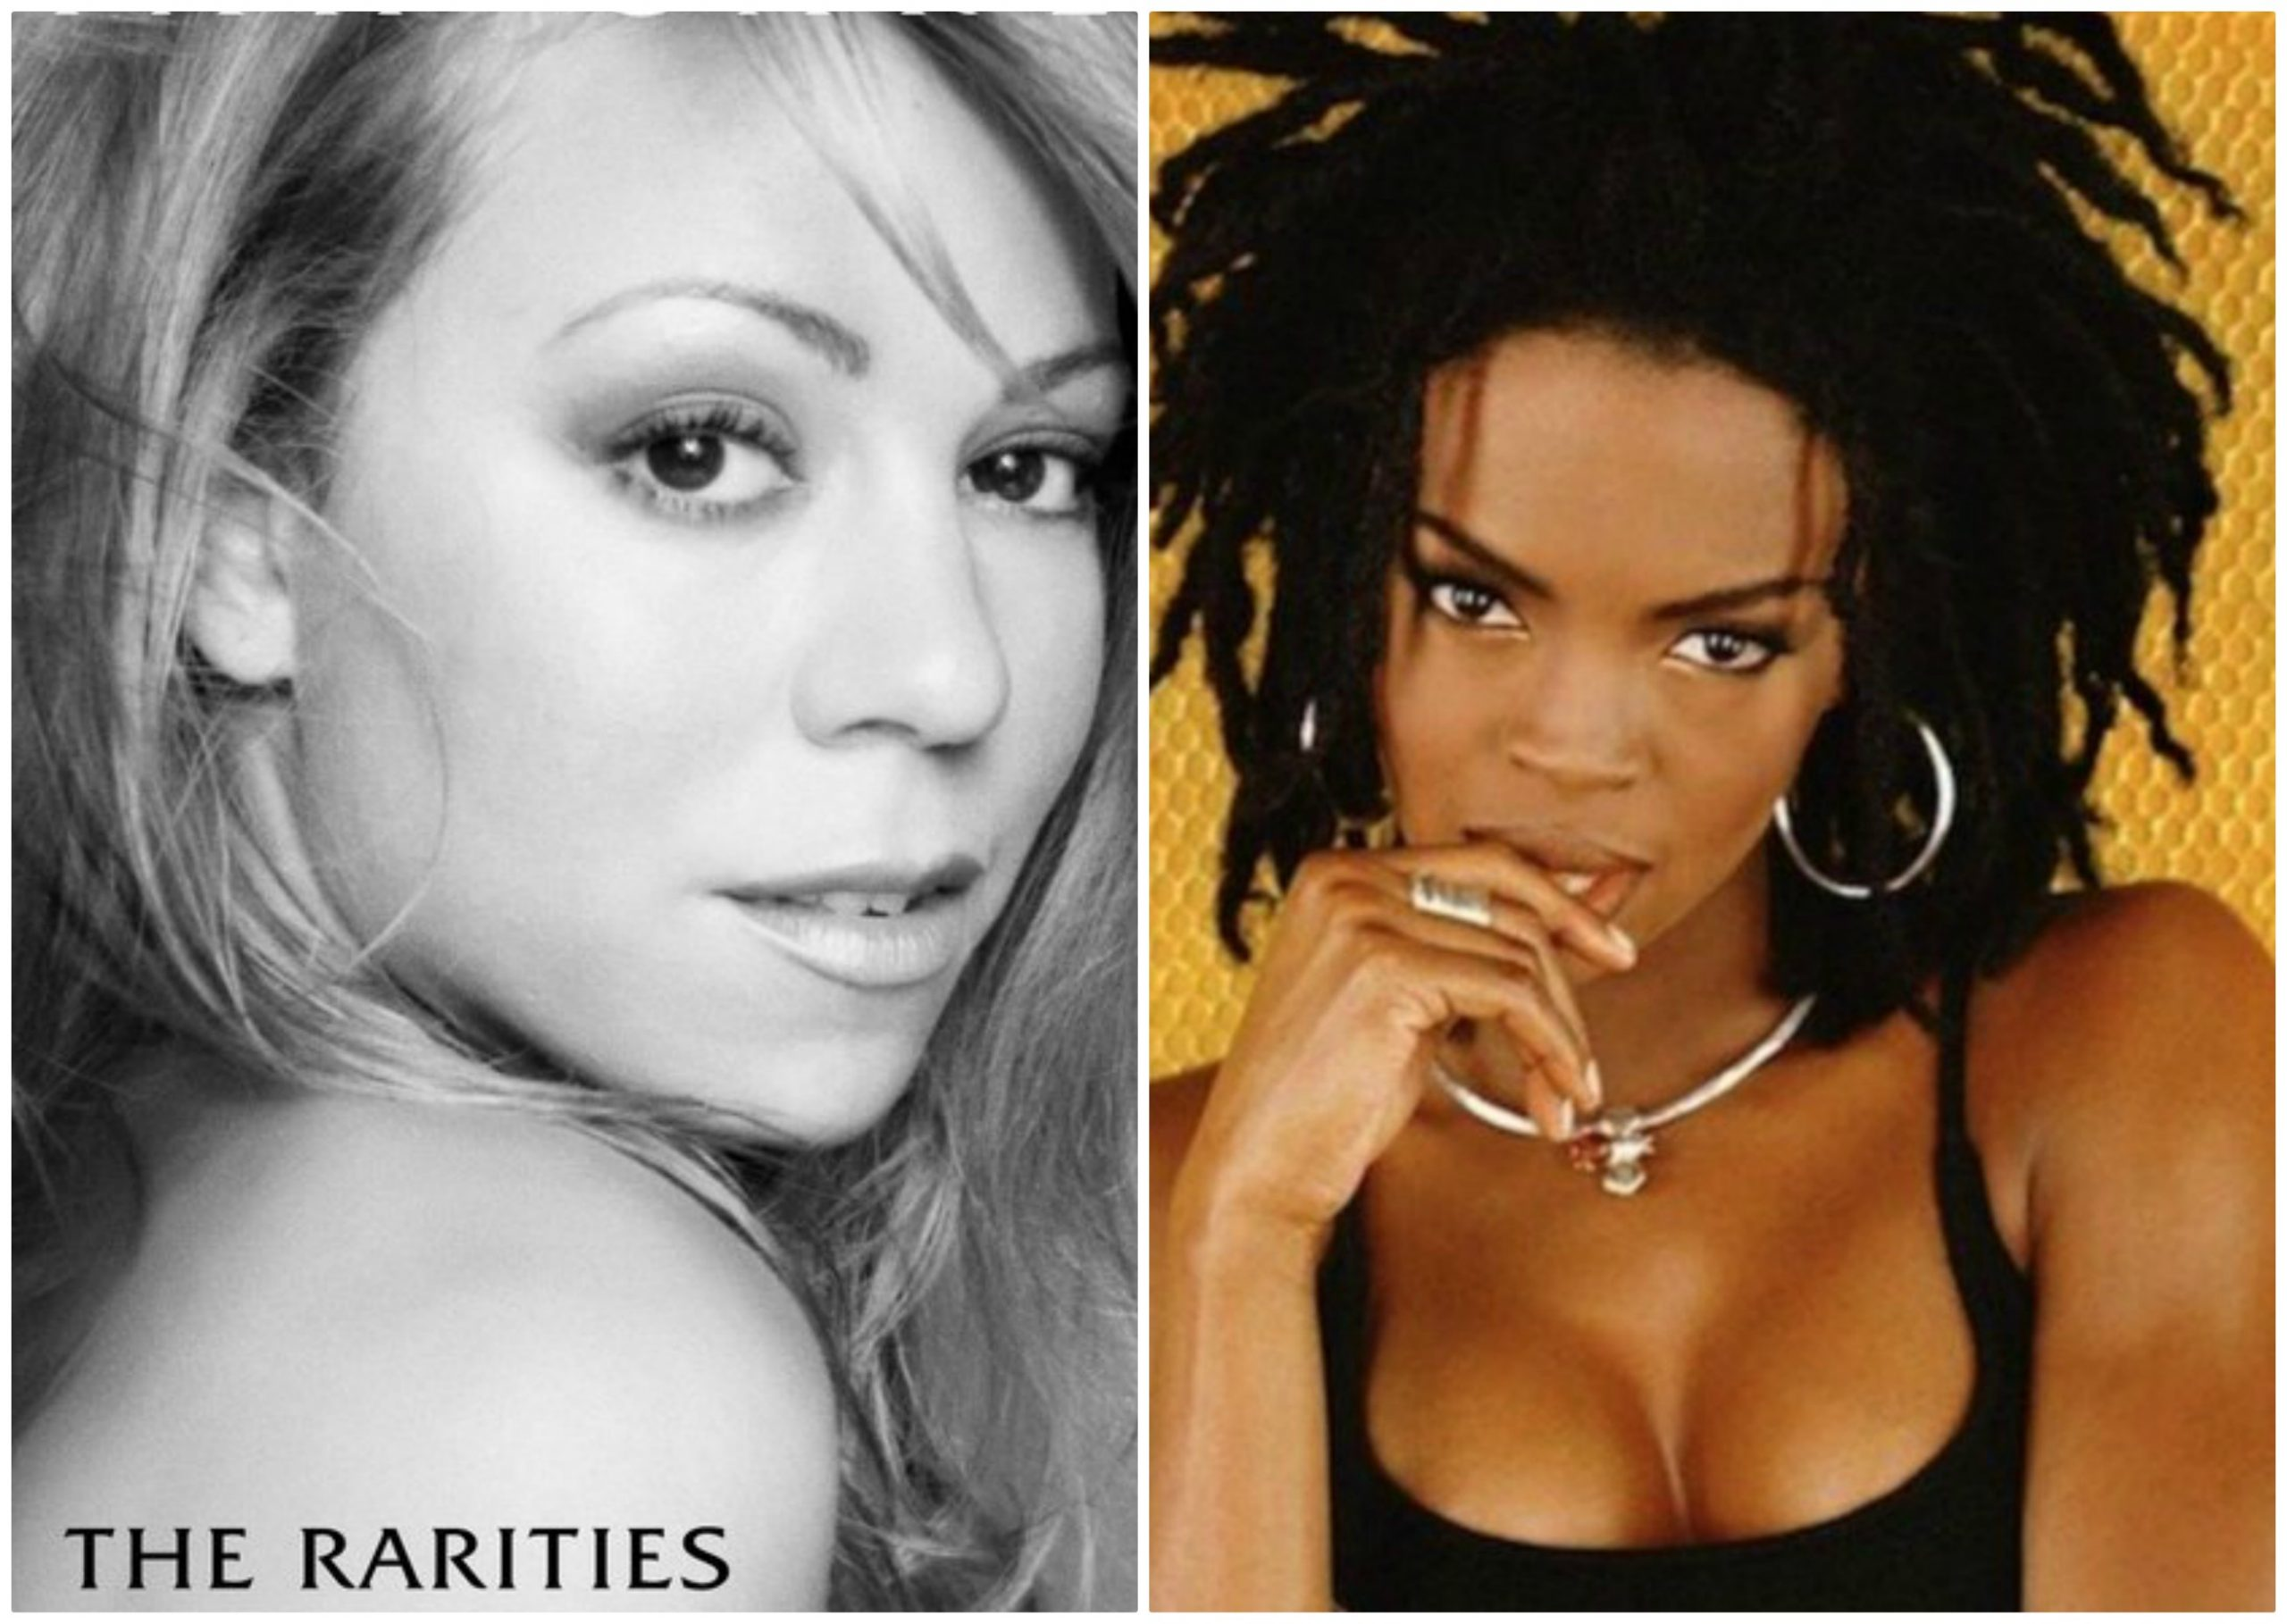 mariah-carey-will-release-a-song-titled-save-the-day-with-lauryn-hill